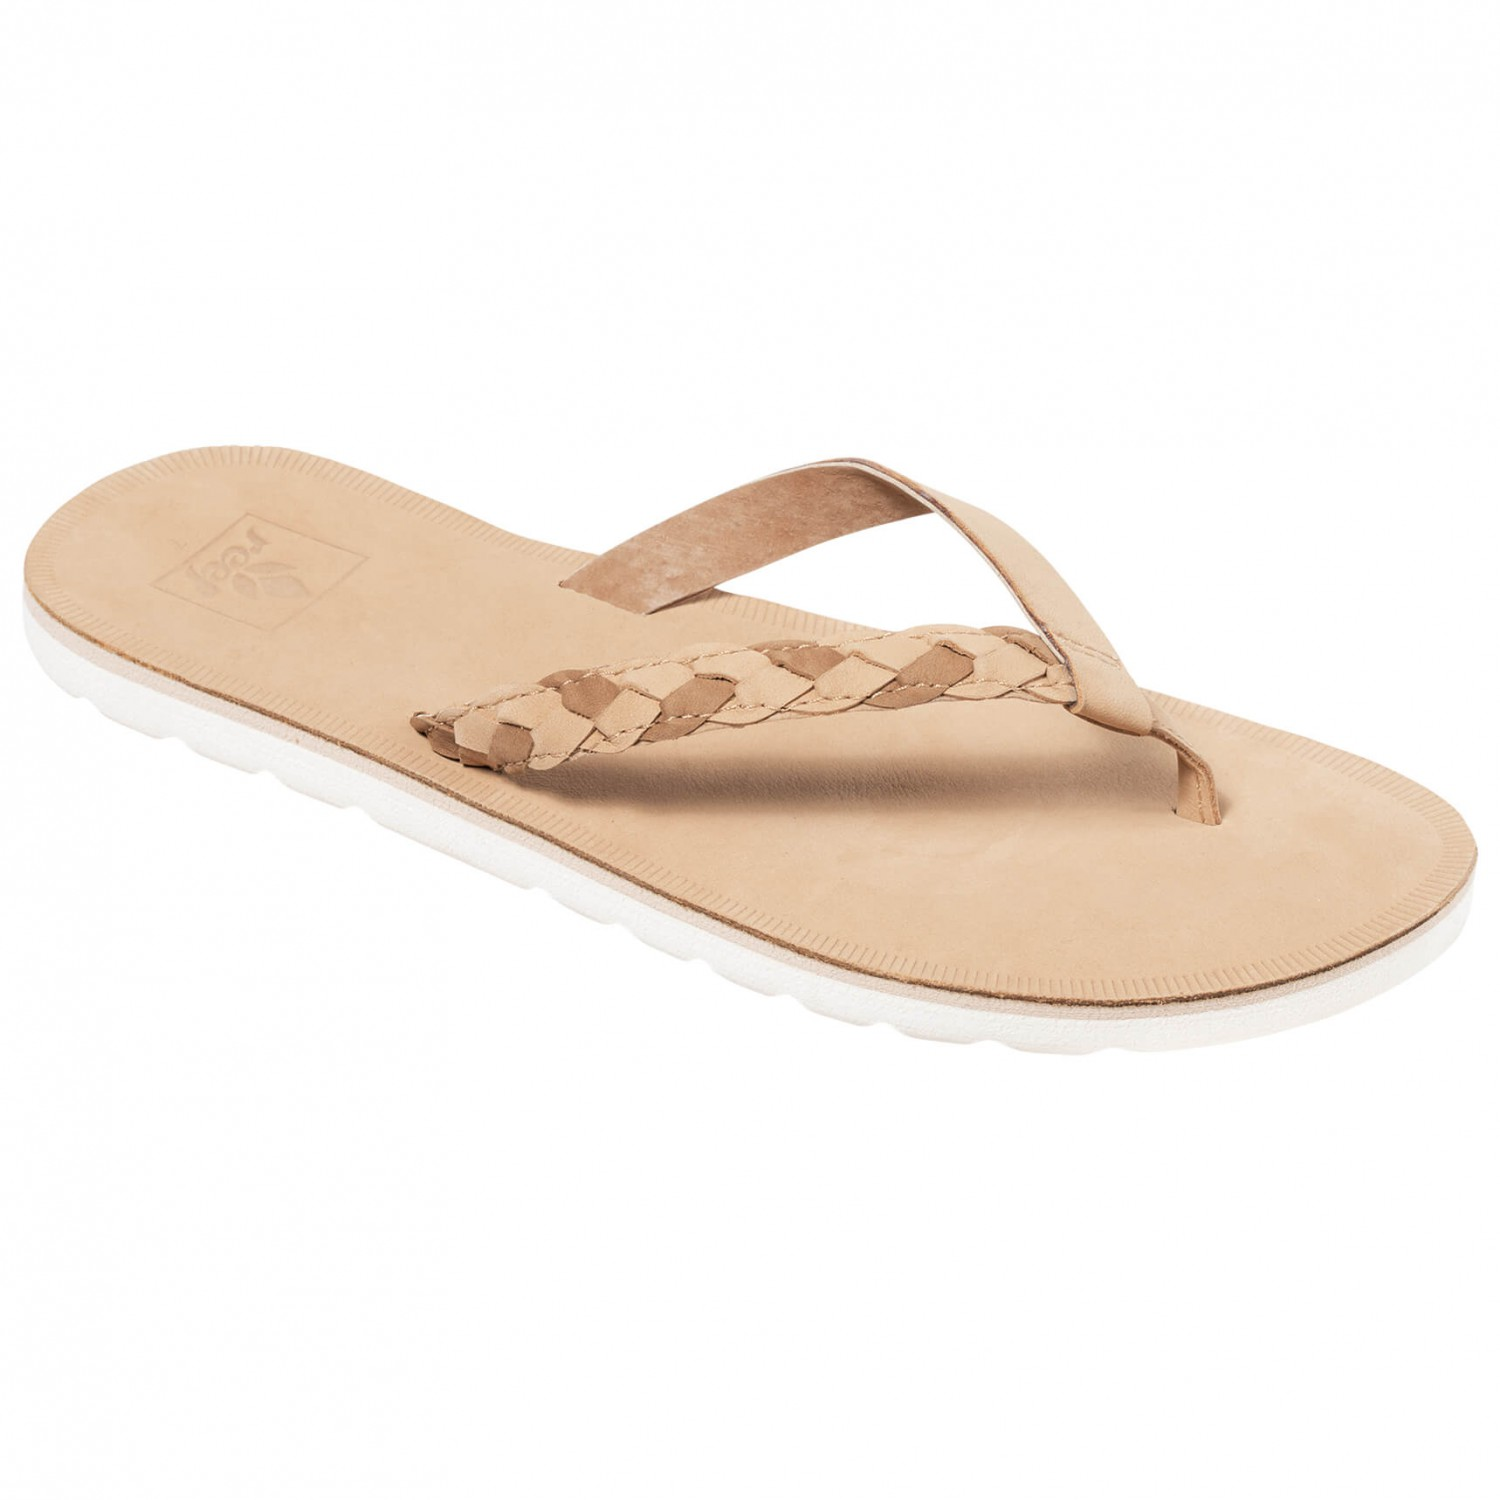 ecfb91152 Reef - Women s Voyage Sunset Leather - Sandals ...